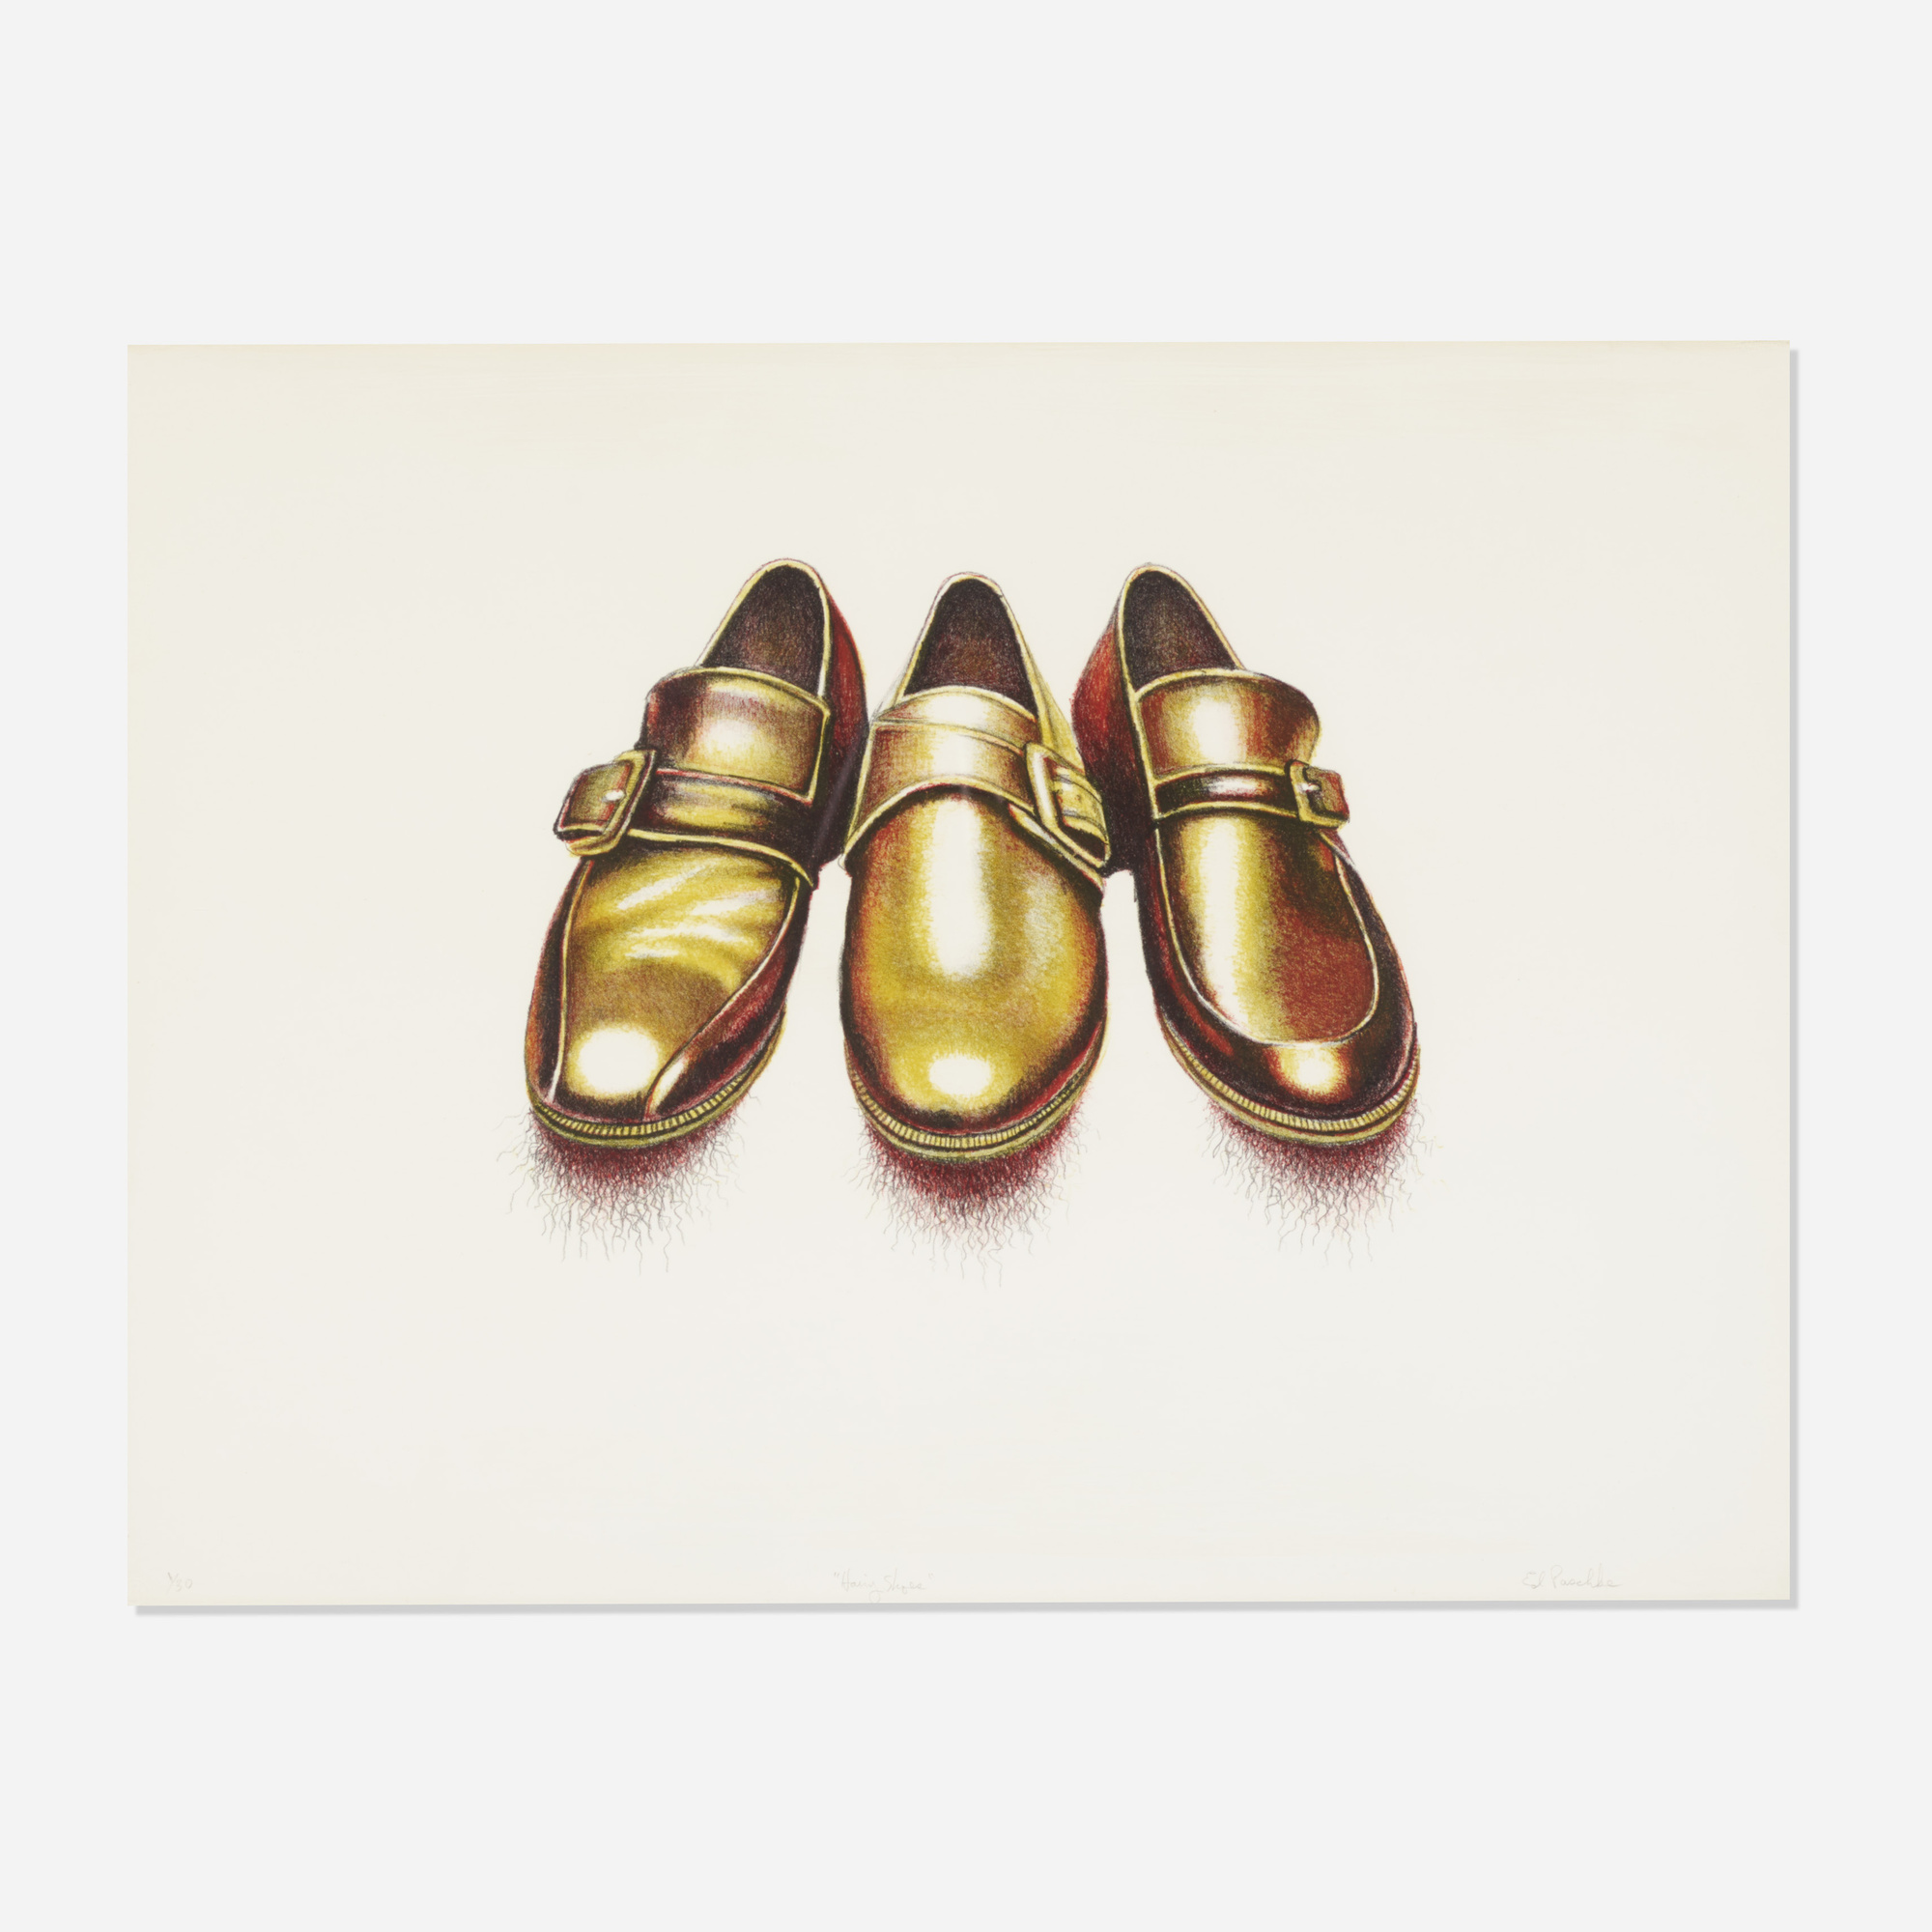 144: Ed Paschke / Hairy Shoes (1 of 1)